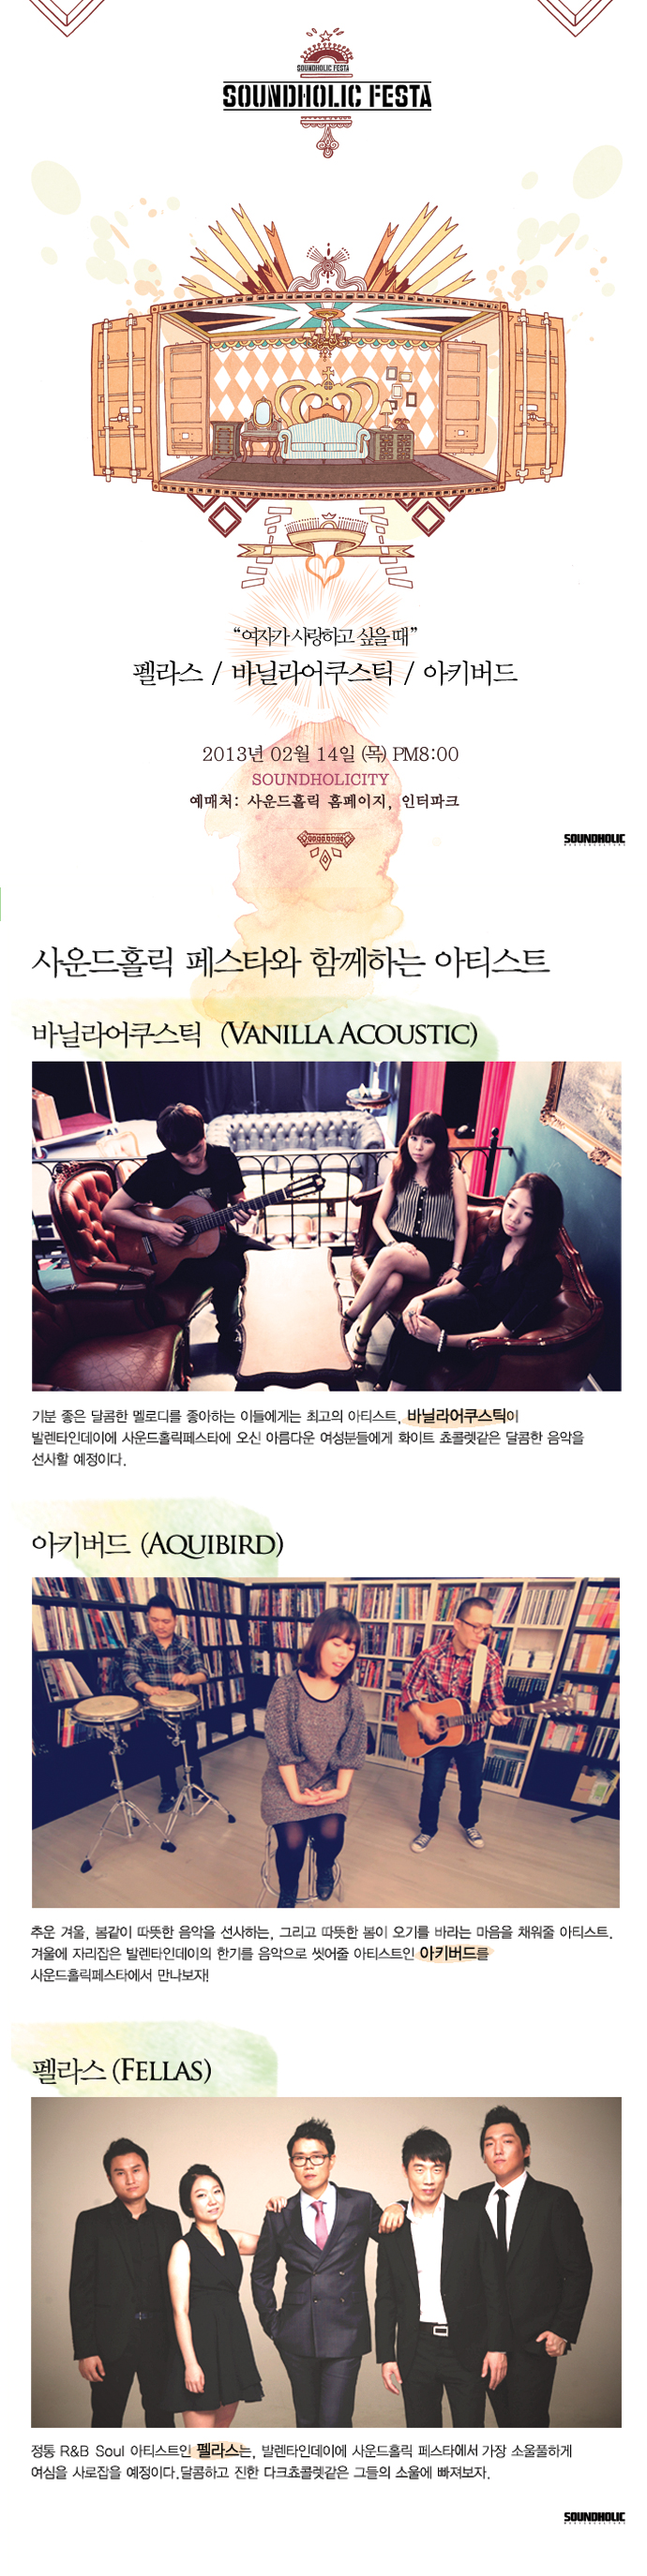 2013년 02월 14일 - Soundholic Festa vol.3